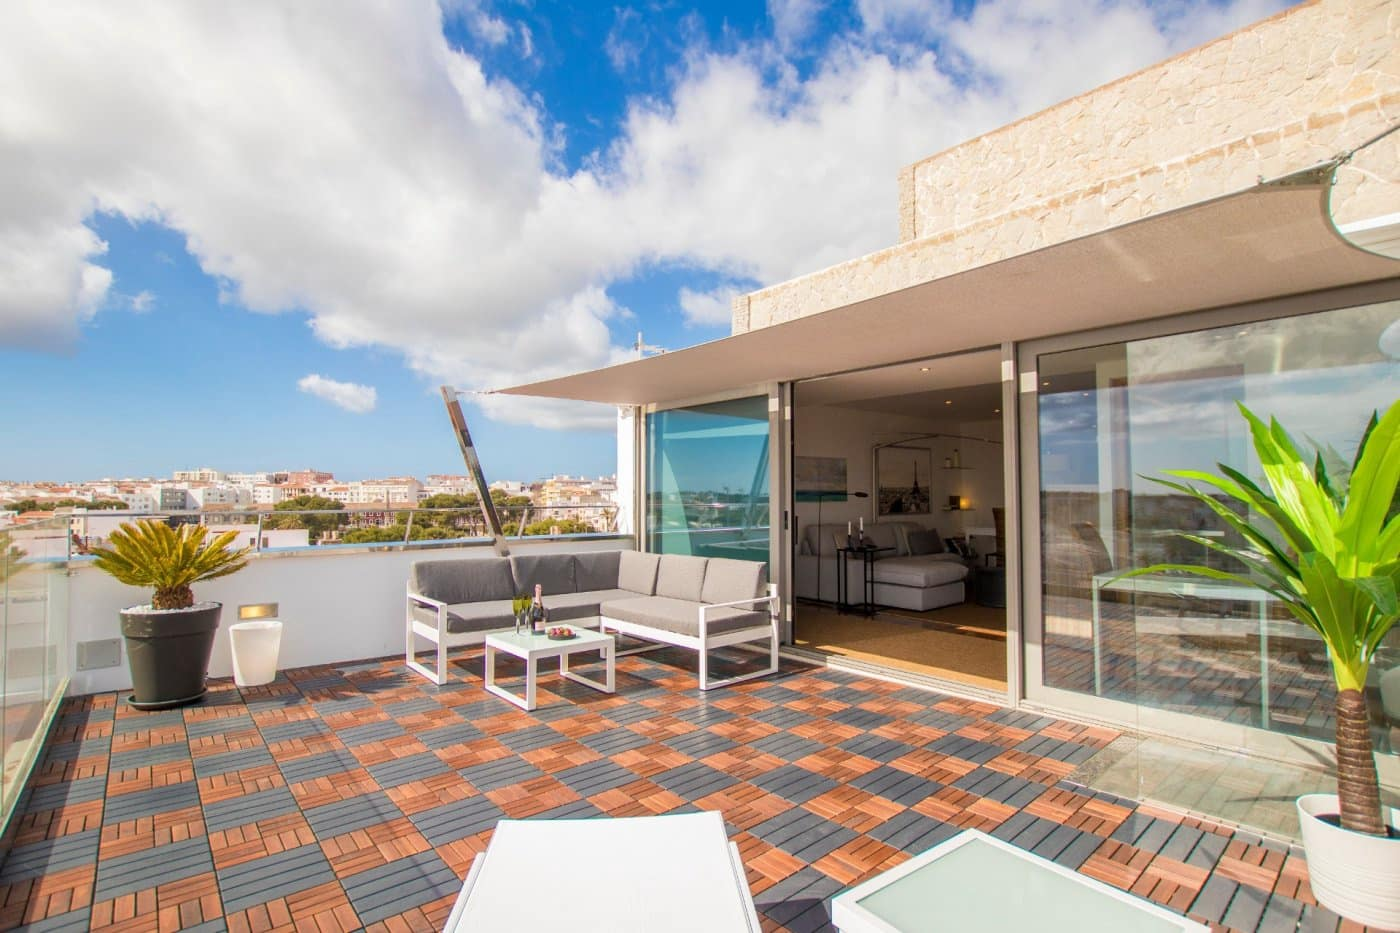 2 bedroom Penthouse for sale in Mahon / Mao - € 375,000 (Ref: 6170572)